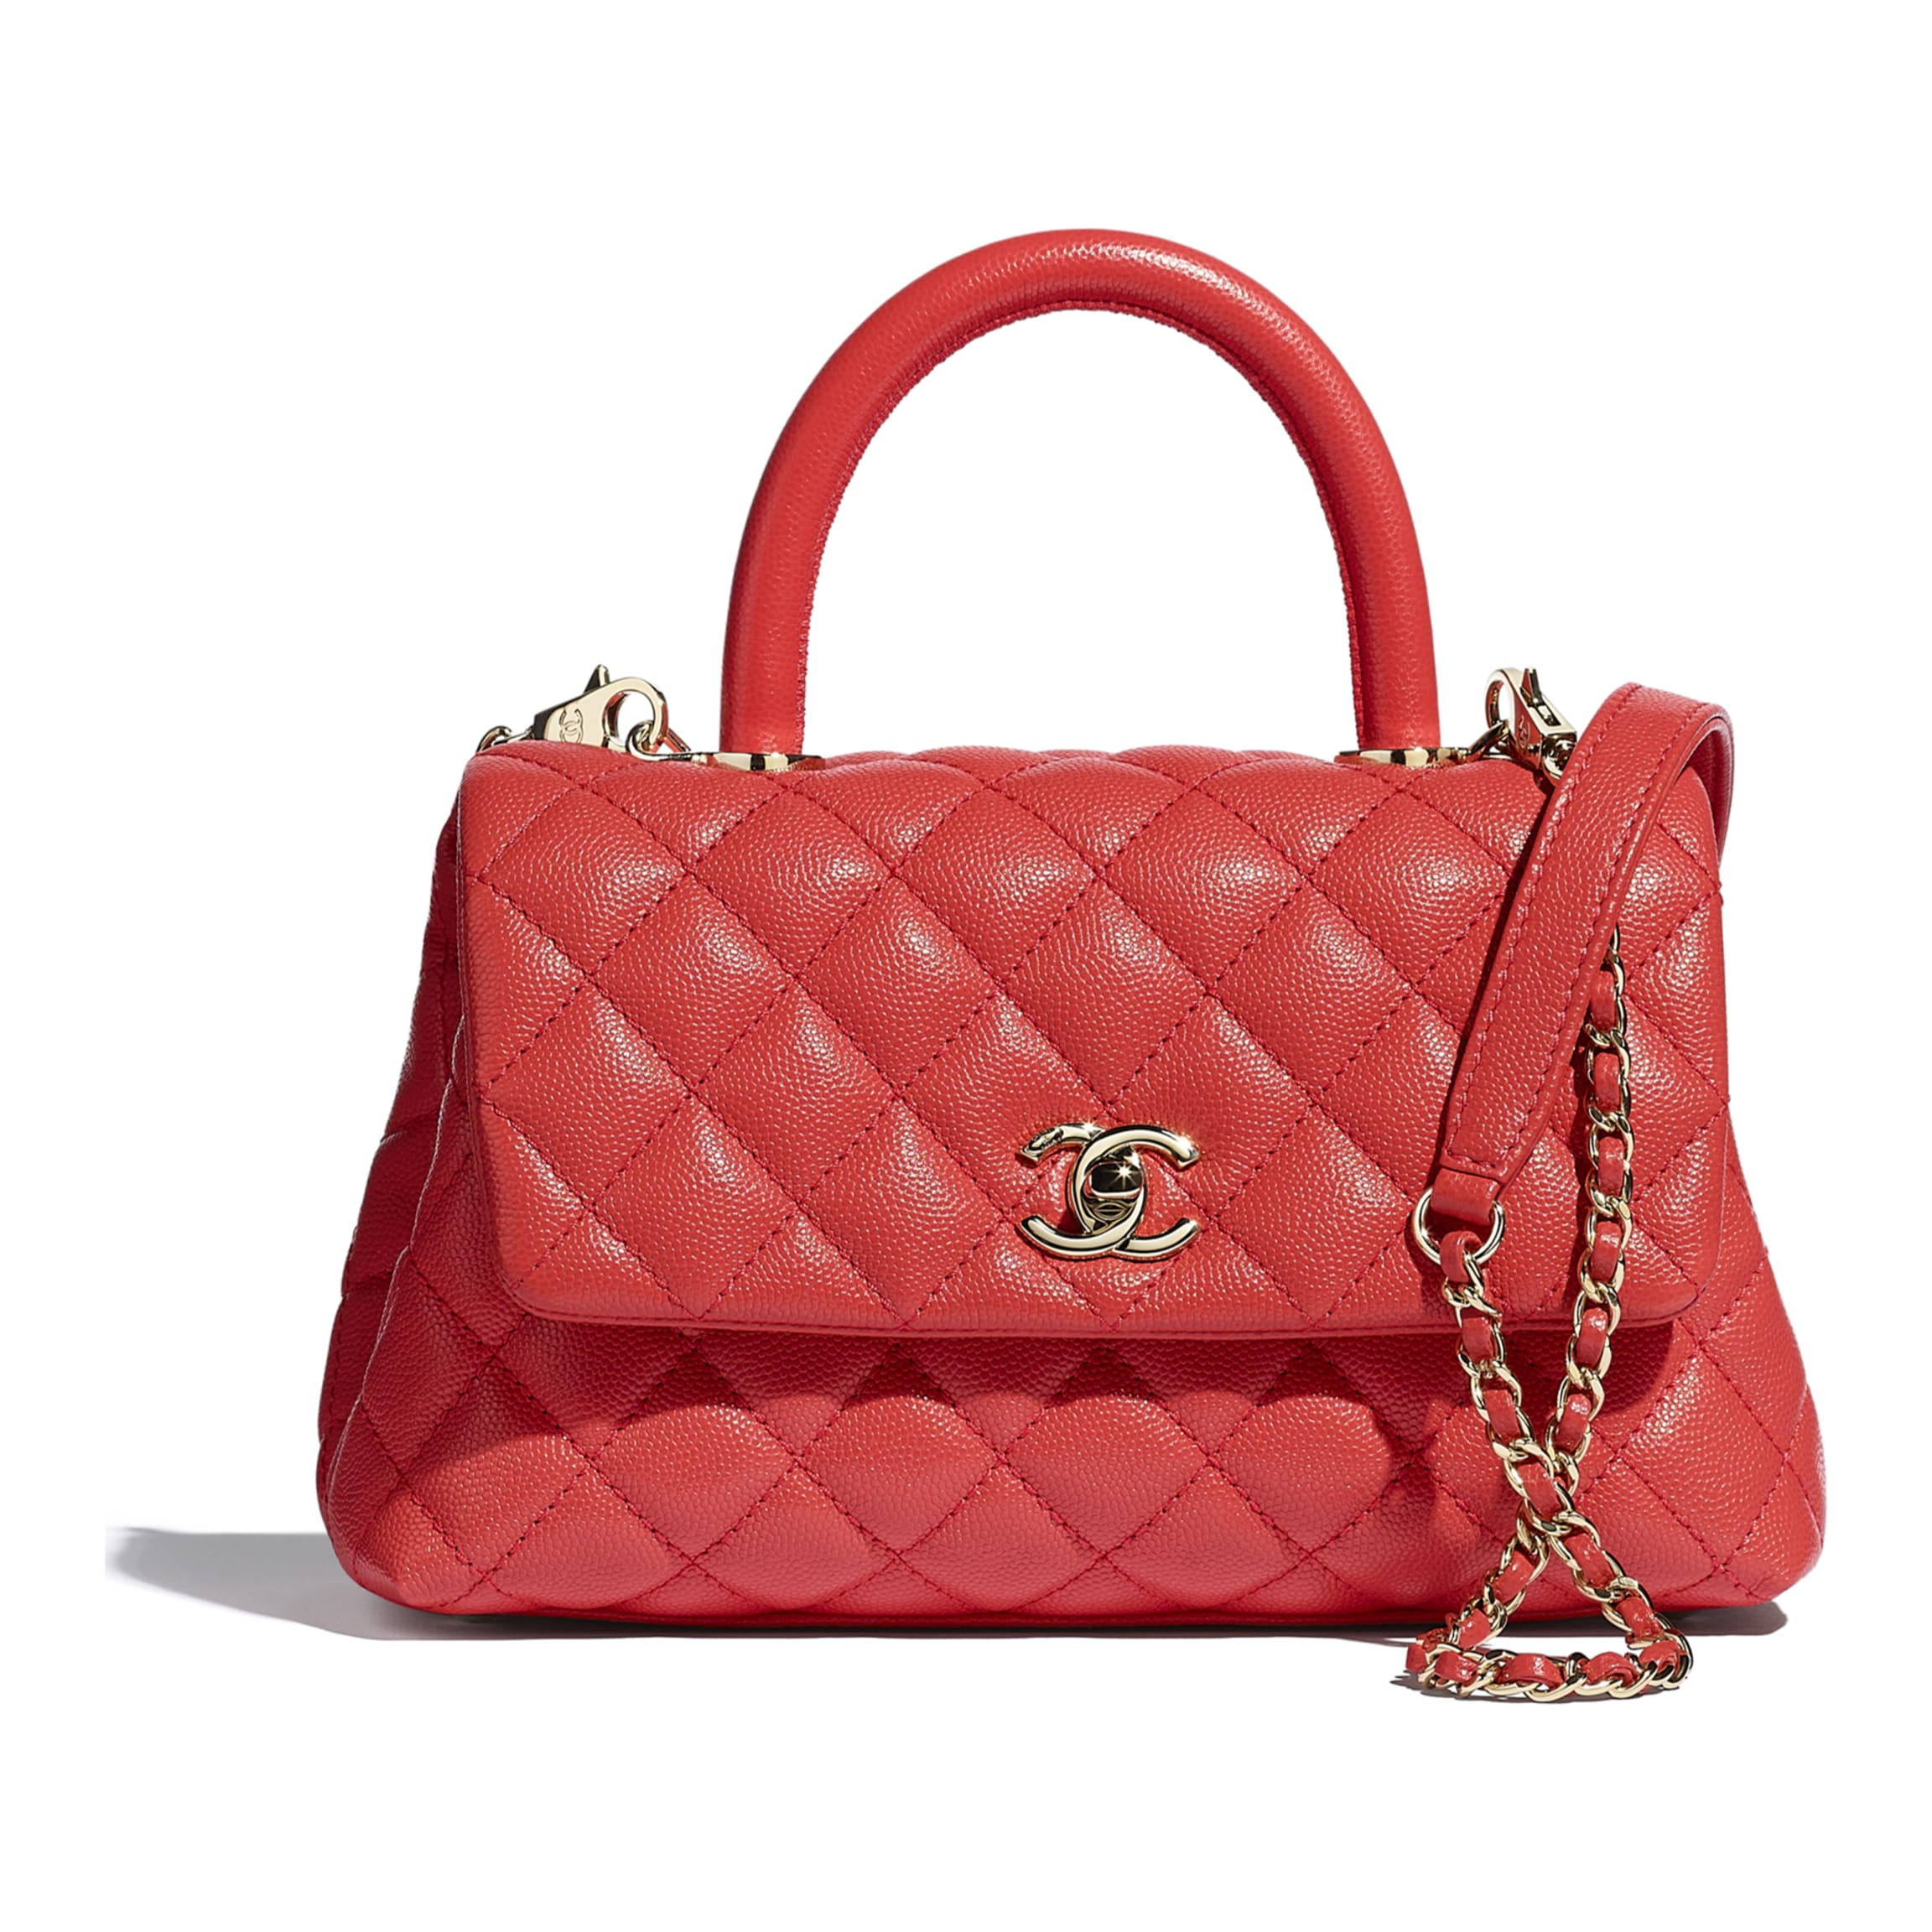 How Much Are Chanel Purses on the Resale Market? Retail vs Resale Prices Chanel Coco Handle Bag